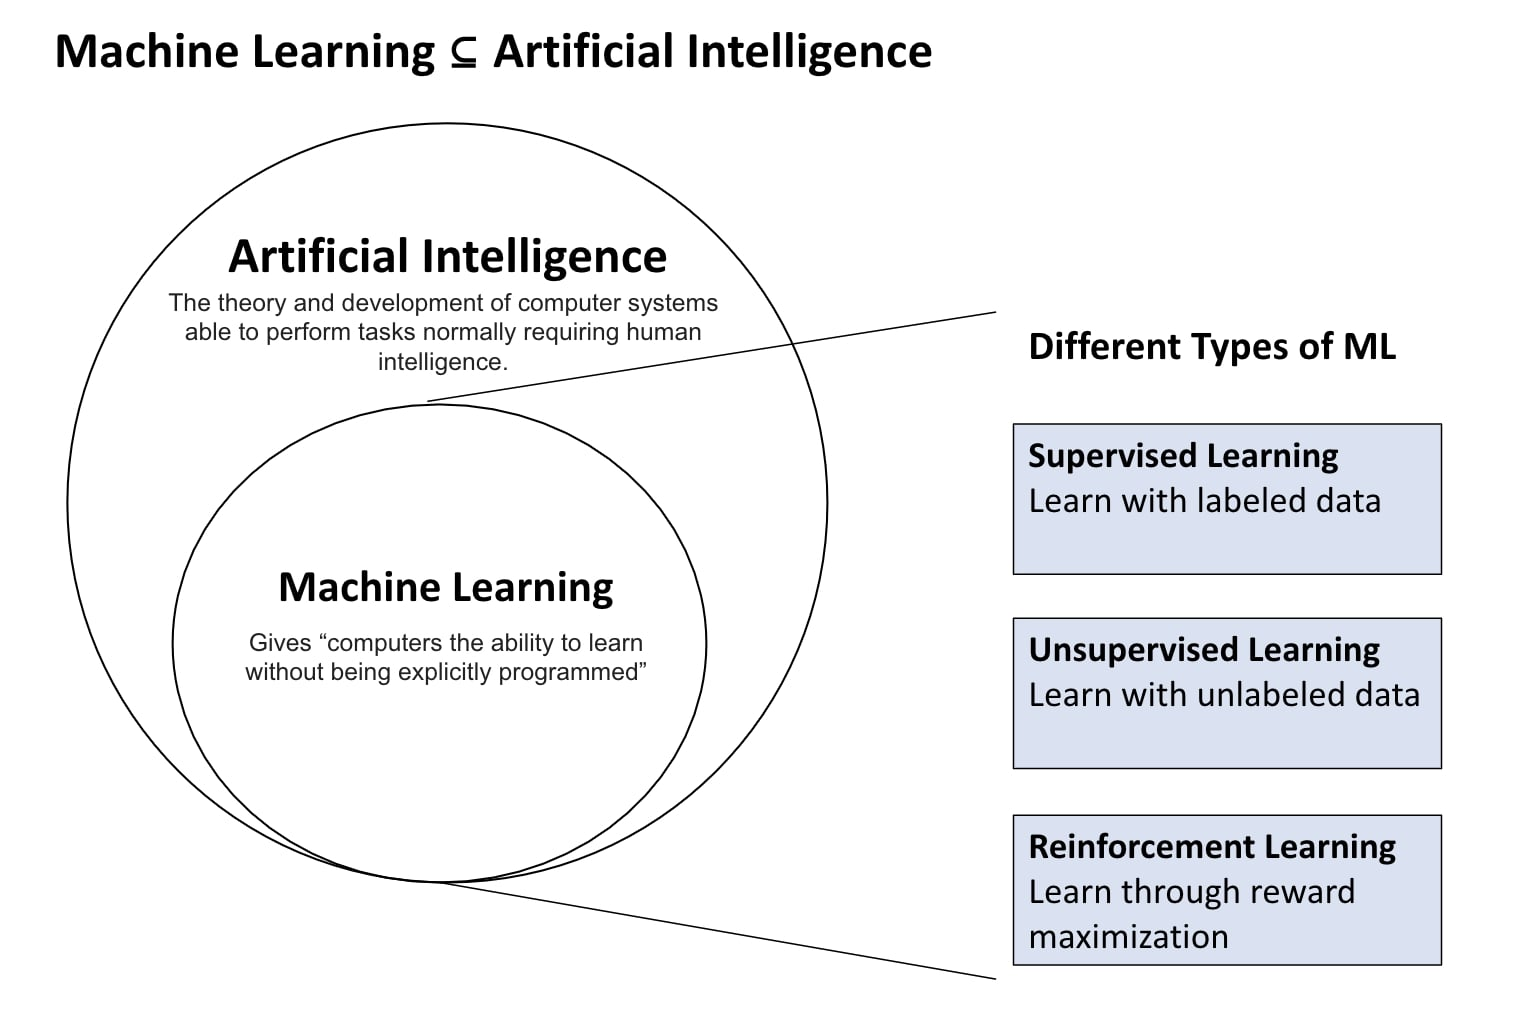 Illustration: Machine Learning is a subset of Artificial Intelligence. There are three types of ML: Supervised Learning, Unsupervised Learning and Reinforcement Learning.